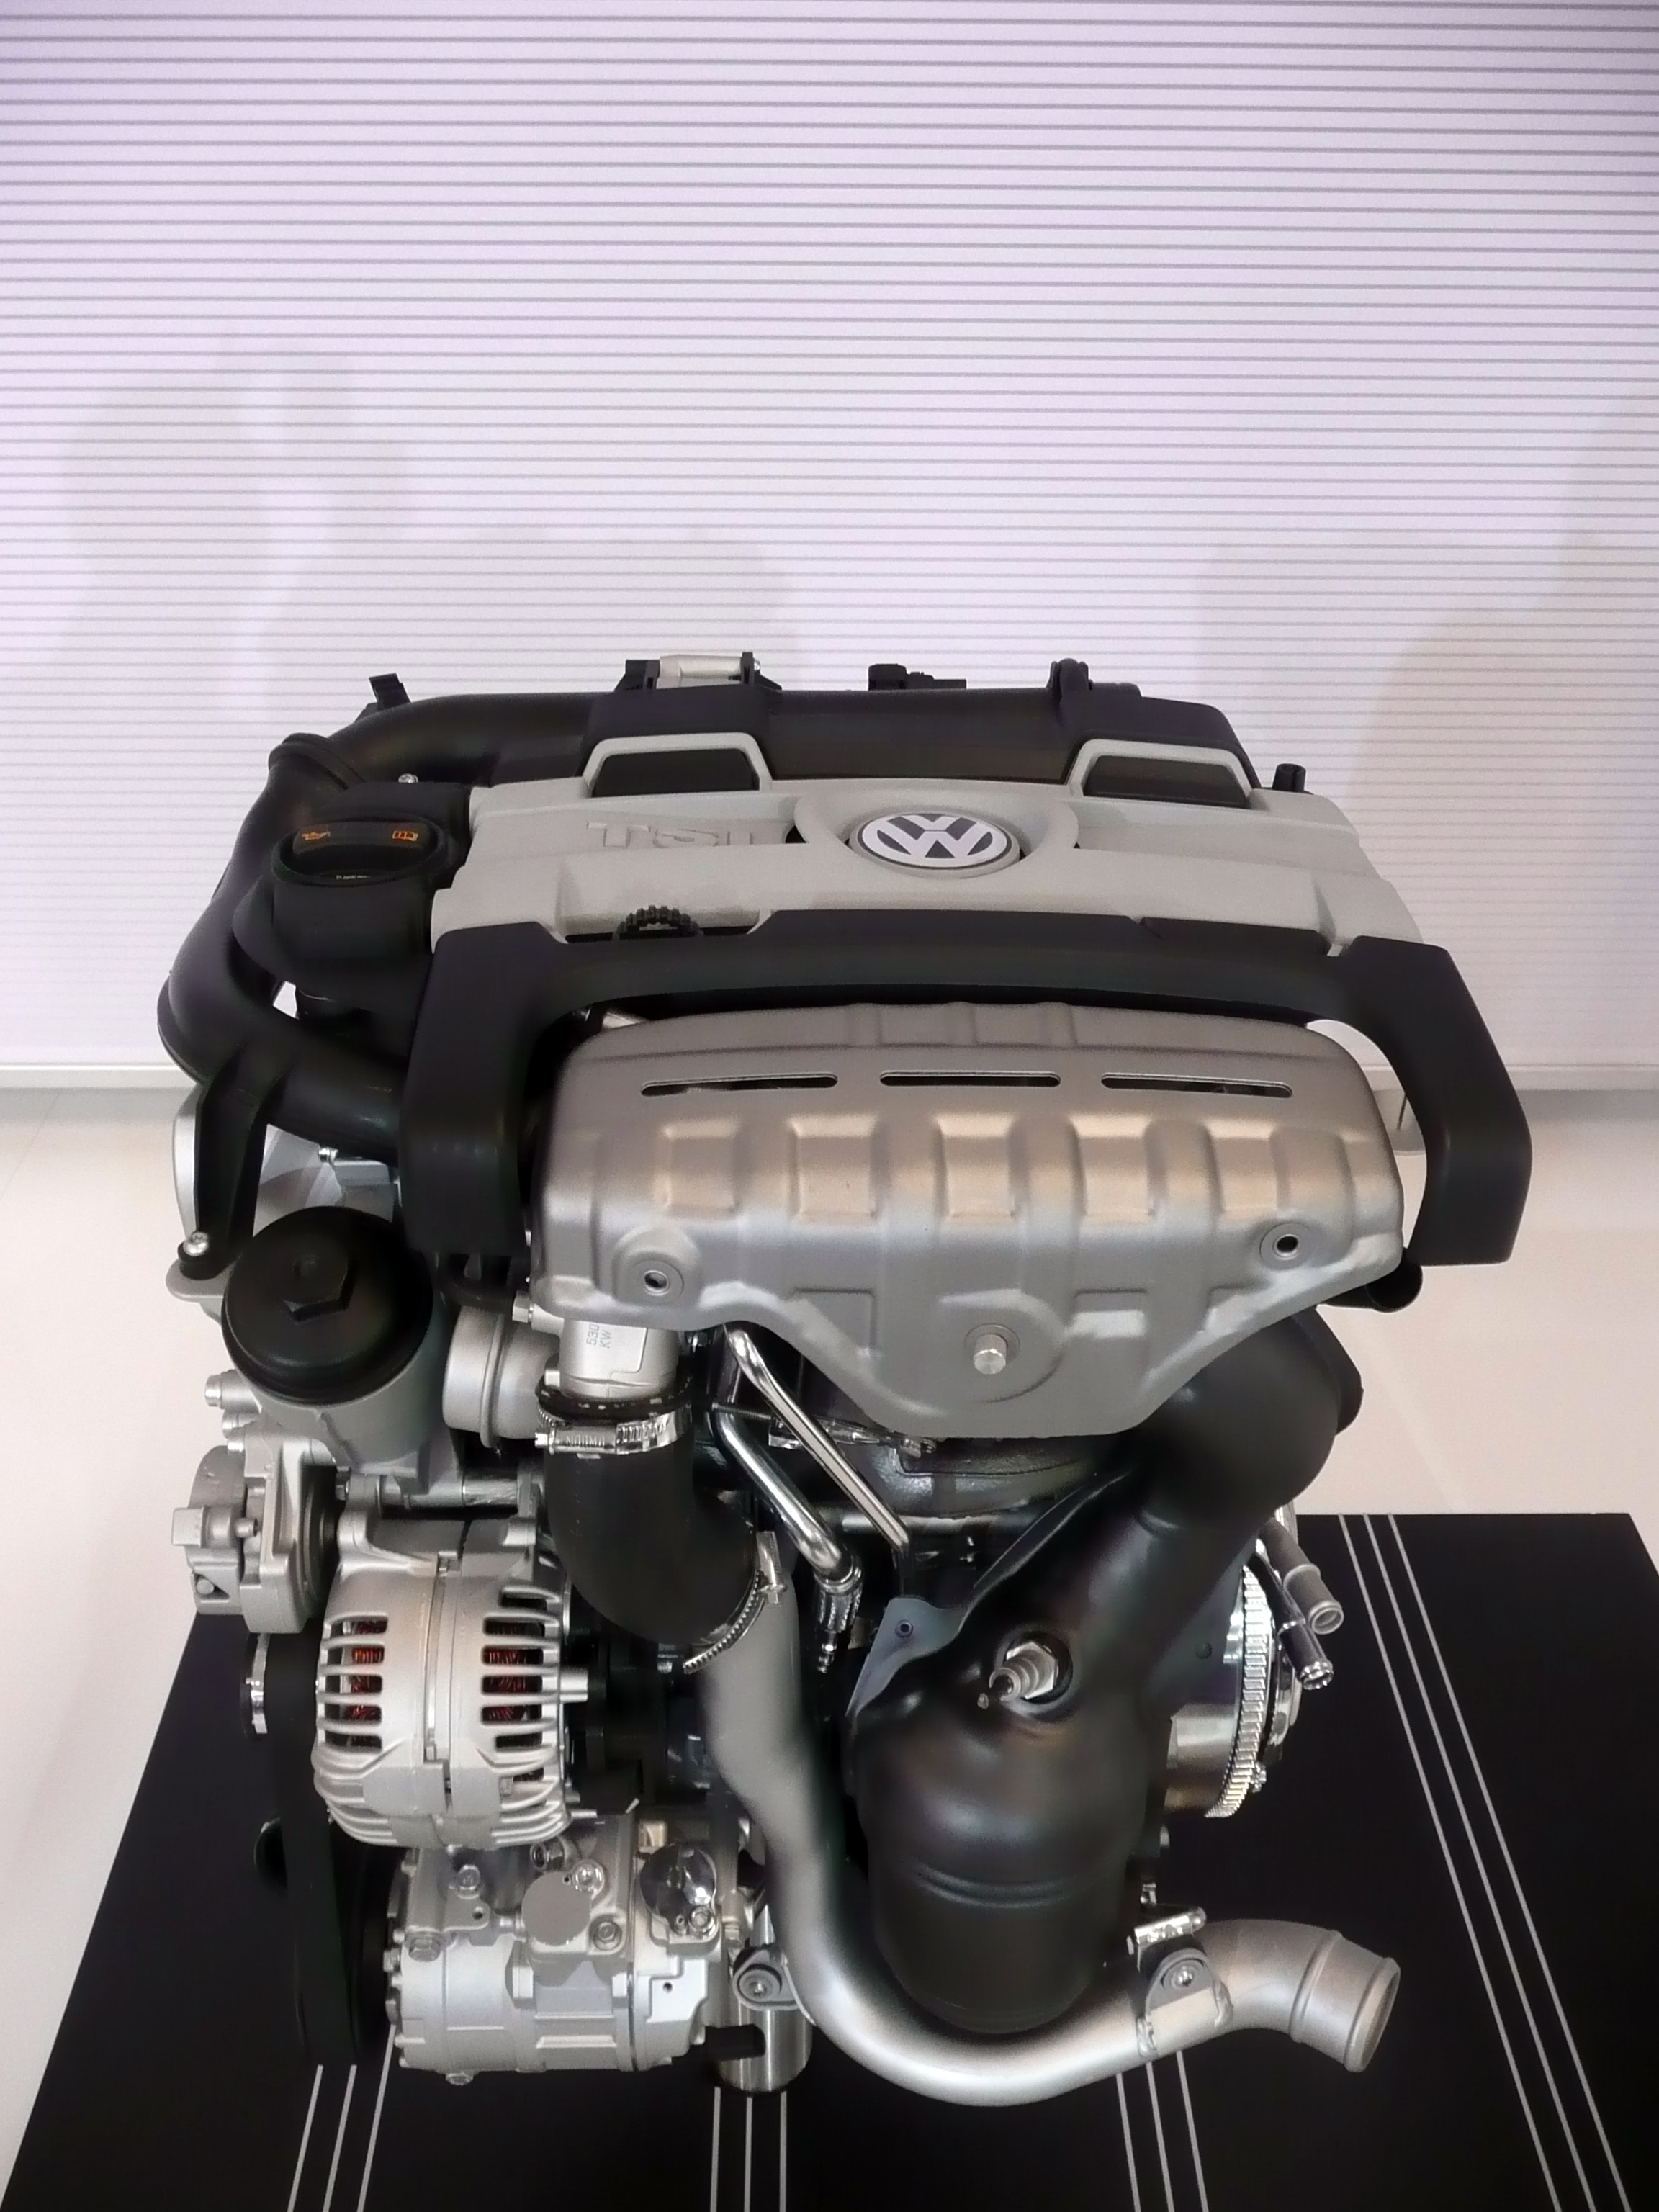 [SCHEMATICS_48YU]  List of Volkswagen Group petrol engines - Wikipedia | Vw 2 0t Engine Diagram |  | Wikipedia